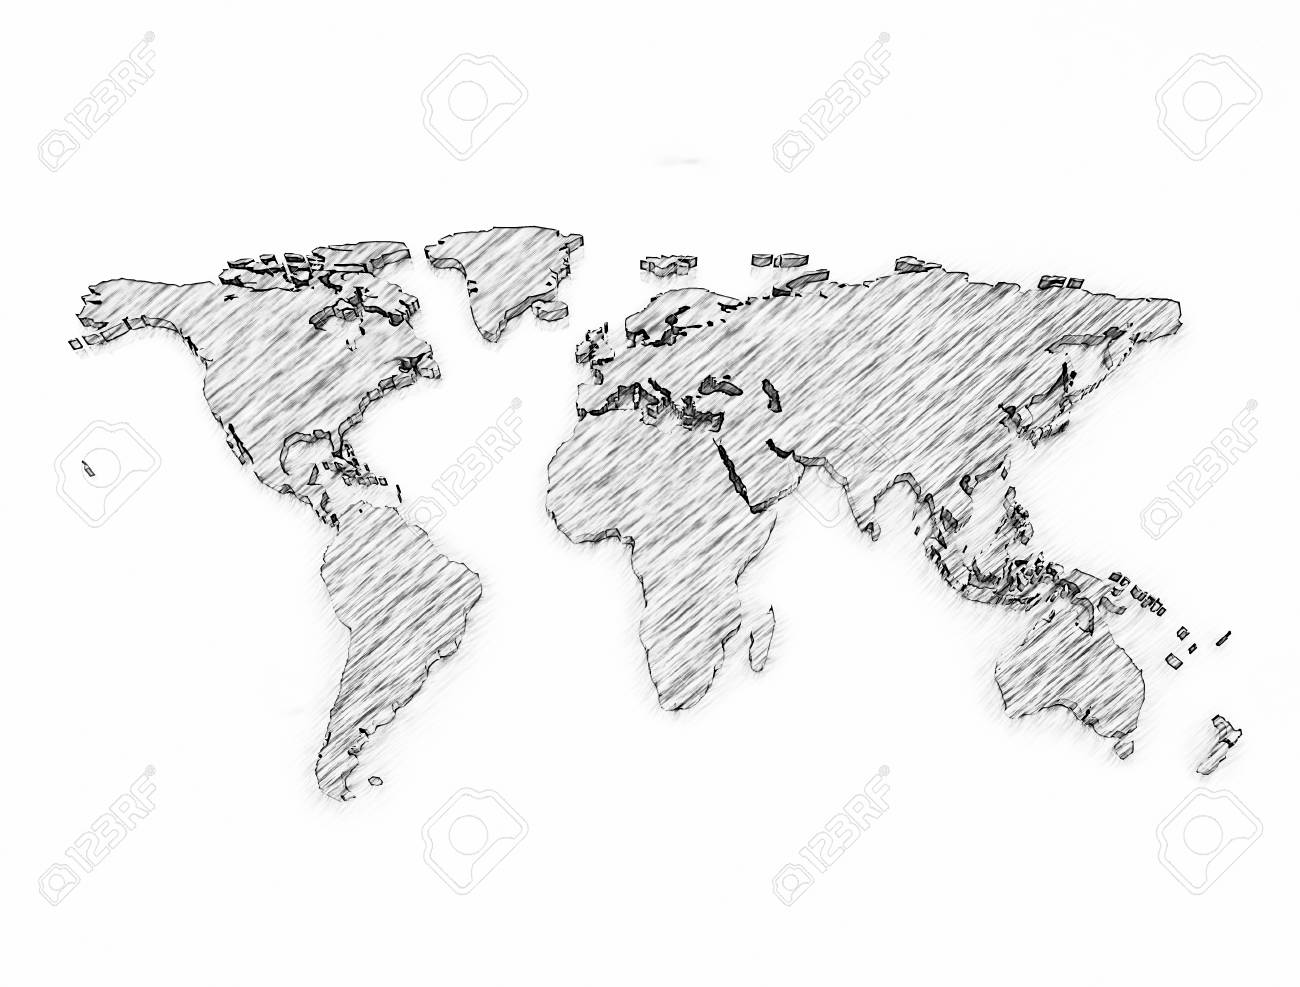 Stock photo world map pencil sketch isolated on white background